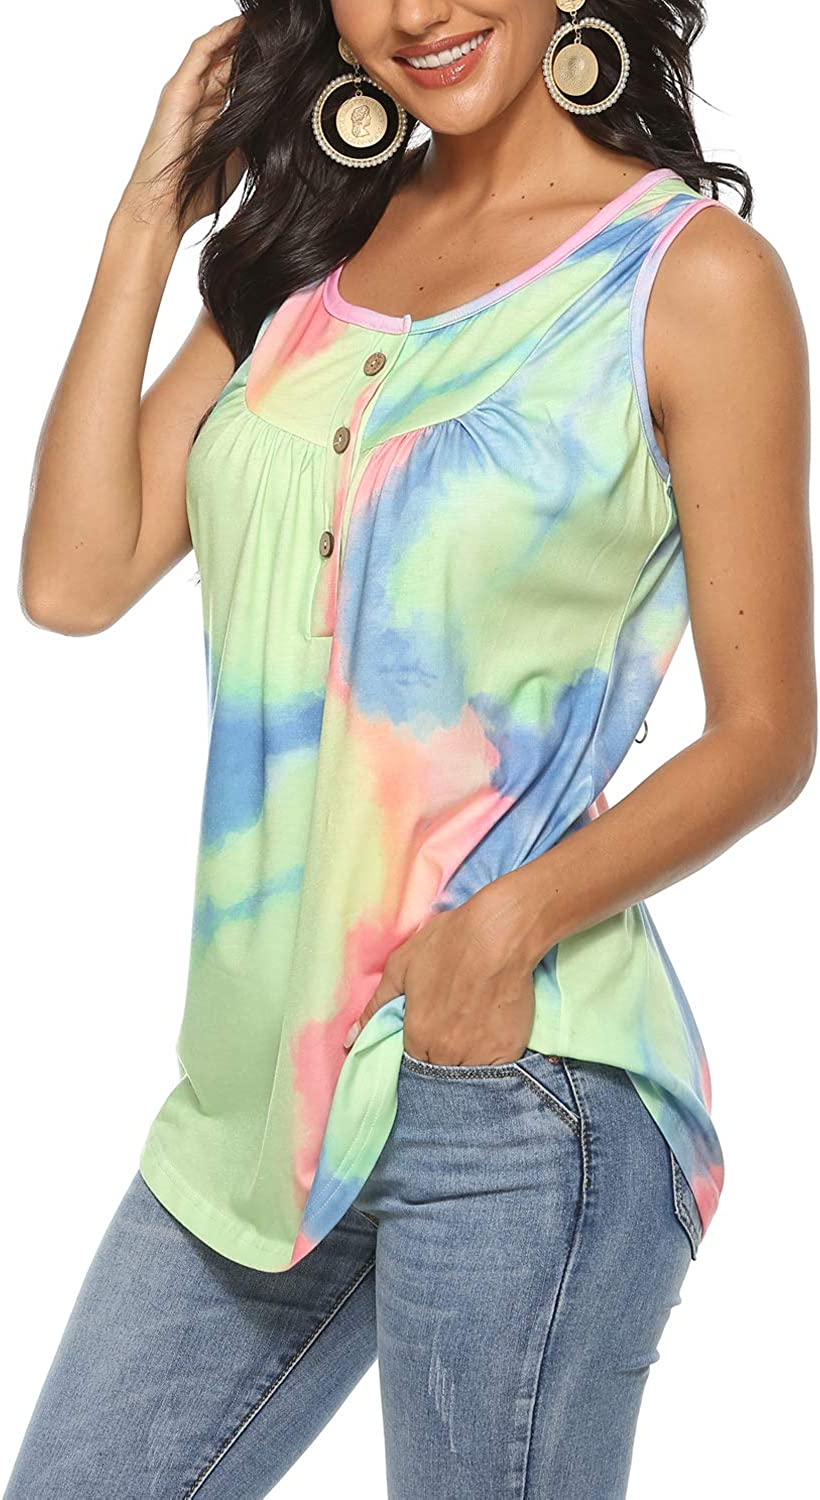 osazic Womens Tops V Neck Soft T-Shirts Floral Swing Flowy Tunic Button up Casual Loose Blouses Summer Tanks S-XXL